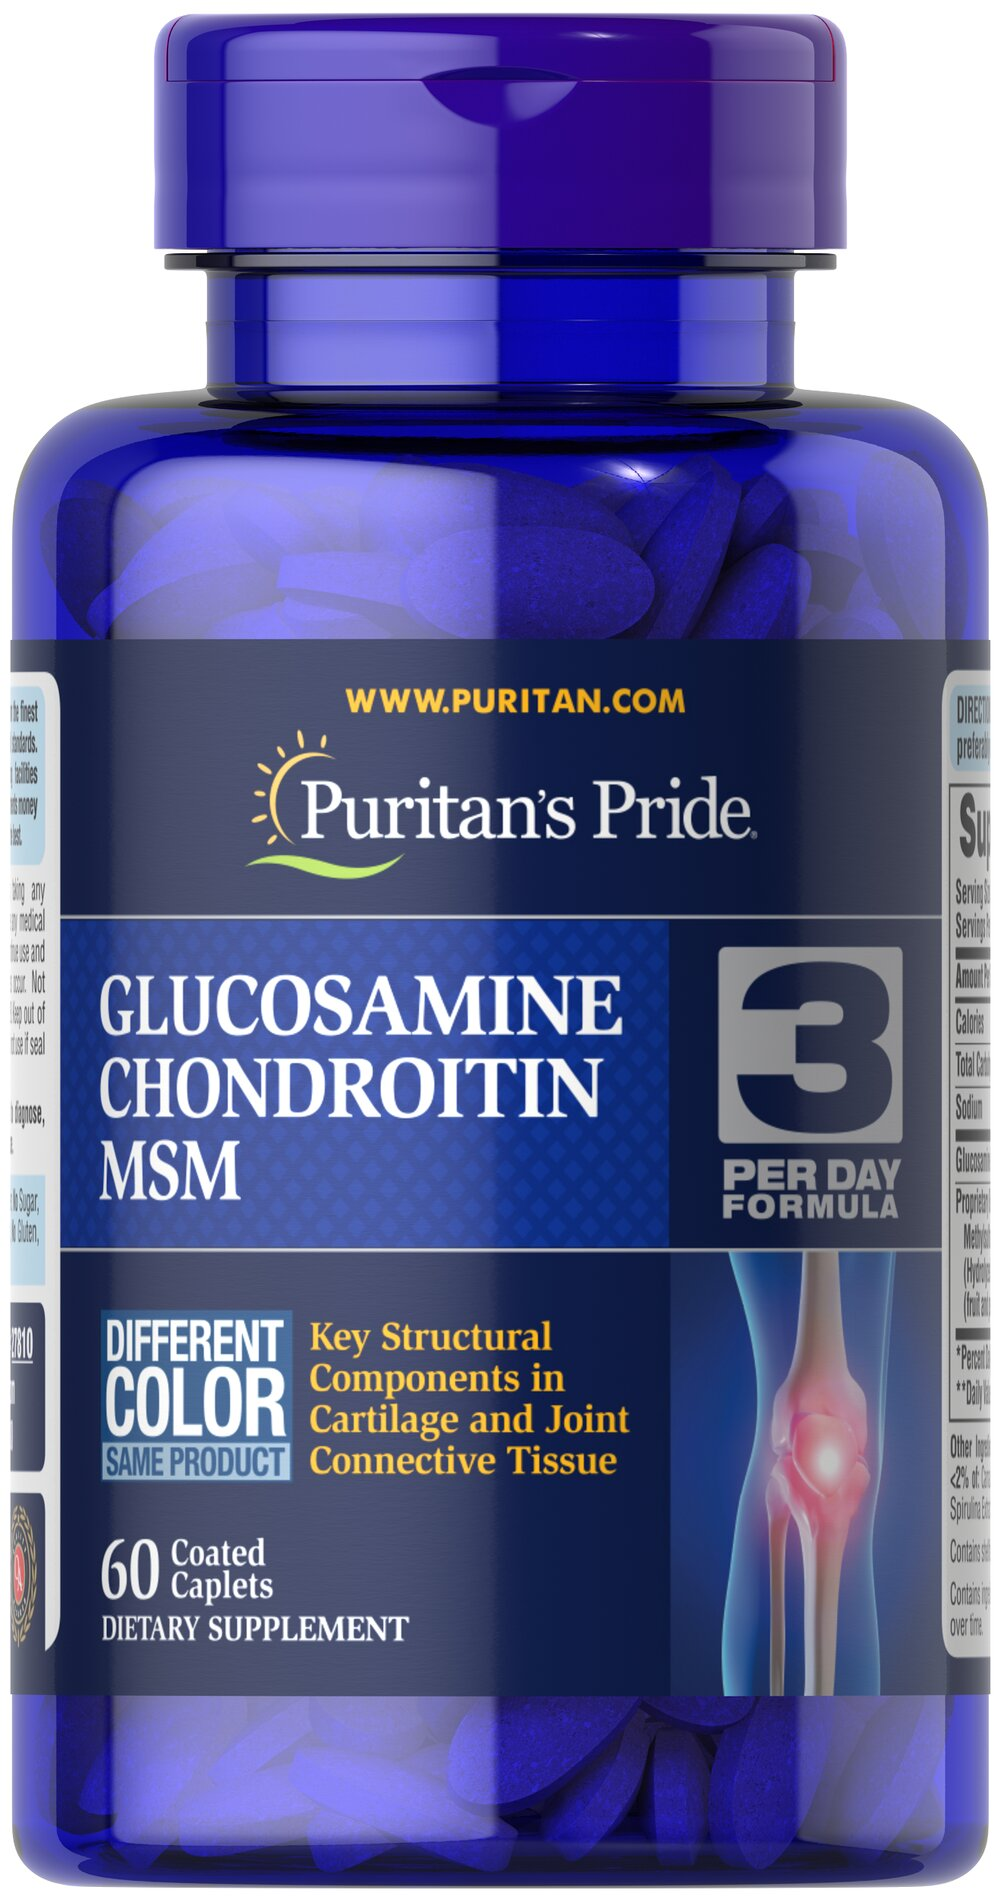 Double Strength Glucosamine, Chondroitin & MSM Joint Soother® <p>Combines the top three structural components found in popular joint support products — Glucosamine, Chondroitin and MSM — with amino and herbal support from Collagen and Boswellia Serrata**</p><p>This high-quality formula delivers 1,500 mg of Glucosamine HCl to help support cartilage, lubricate the joints, and helps with occasional joint stress due to exercise or physical activity**</p> 60 Caplets